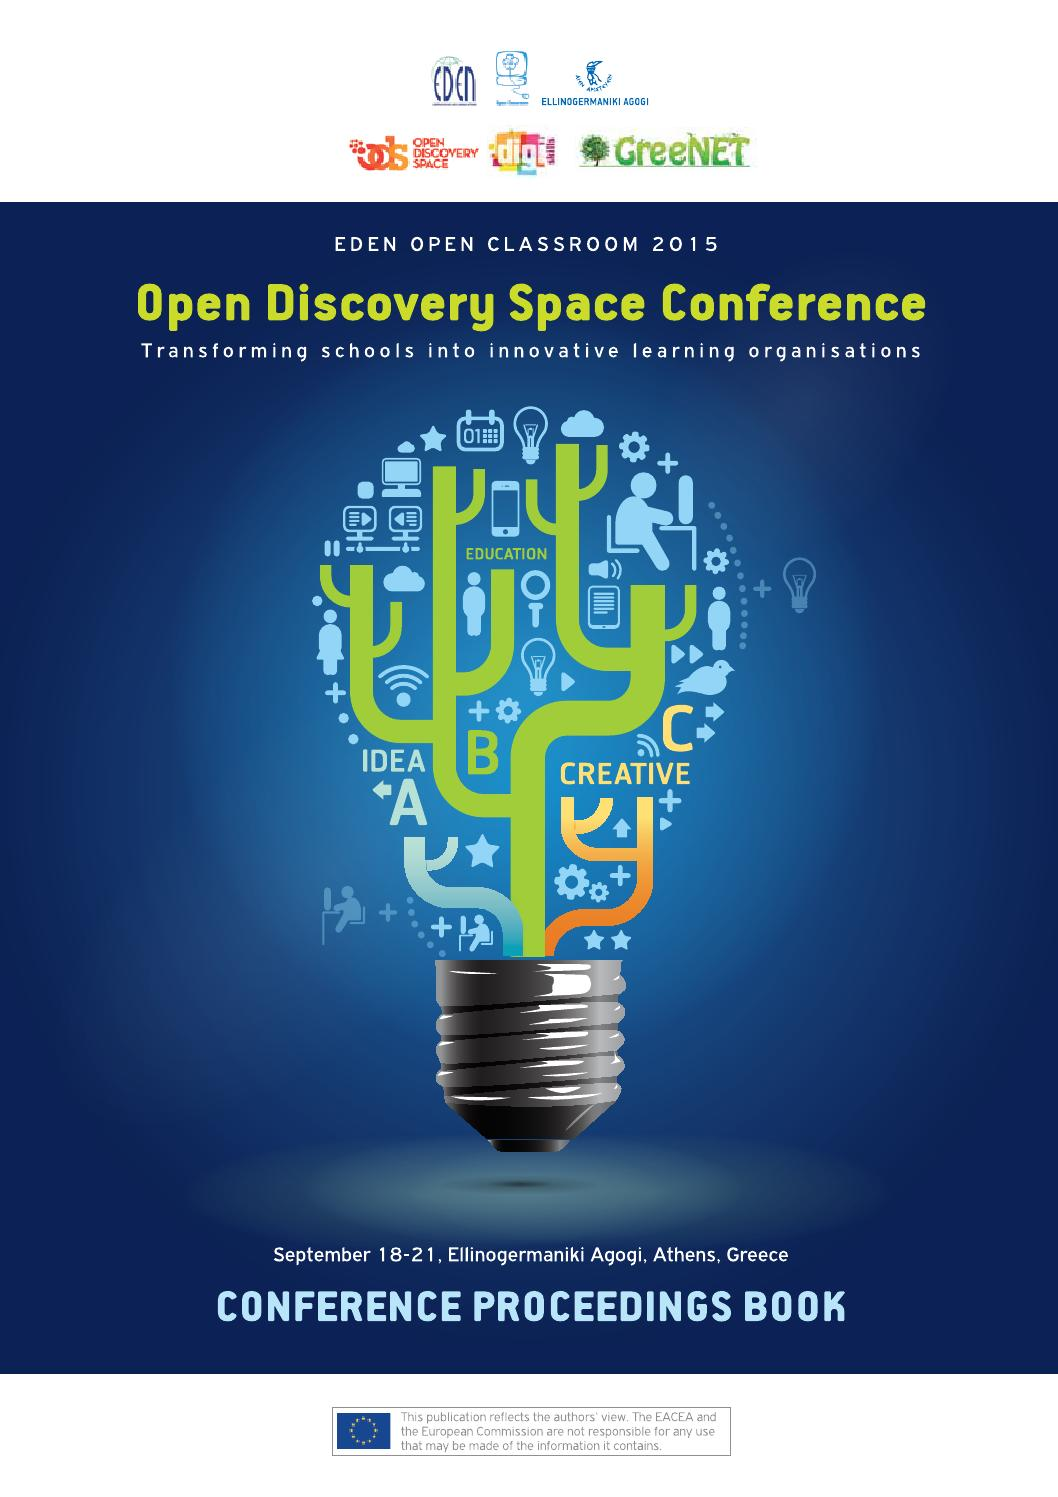 EDEN Open Clroom Conference 2015 - Open Discovery Space ... Math Skills Transparency Worksheet Answers Using The Periodic Table Free Worksheets Liry Xhldon on